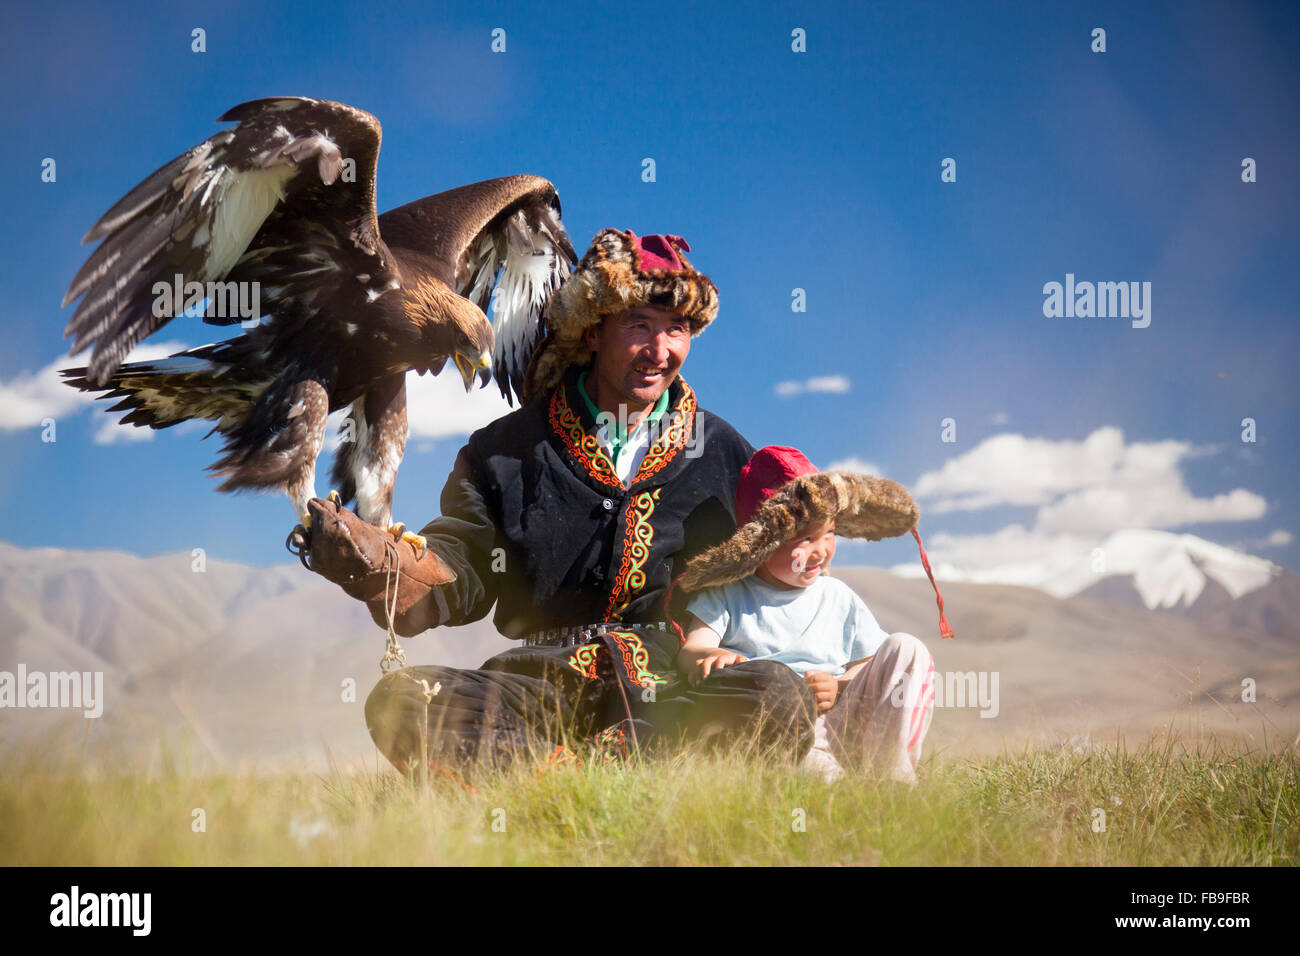 A Kazakh eagle hunter and son in the Tsaast Uul Valley, far-western Mongolia. - Stock Image